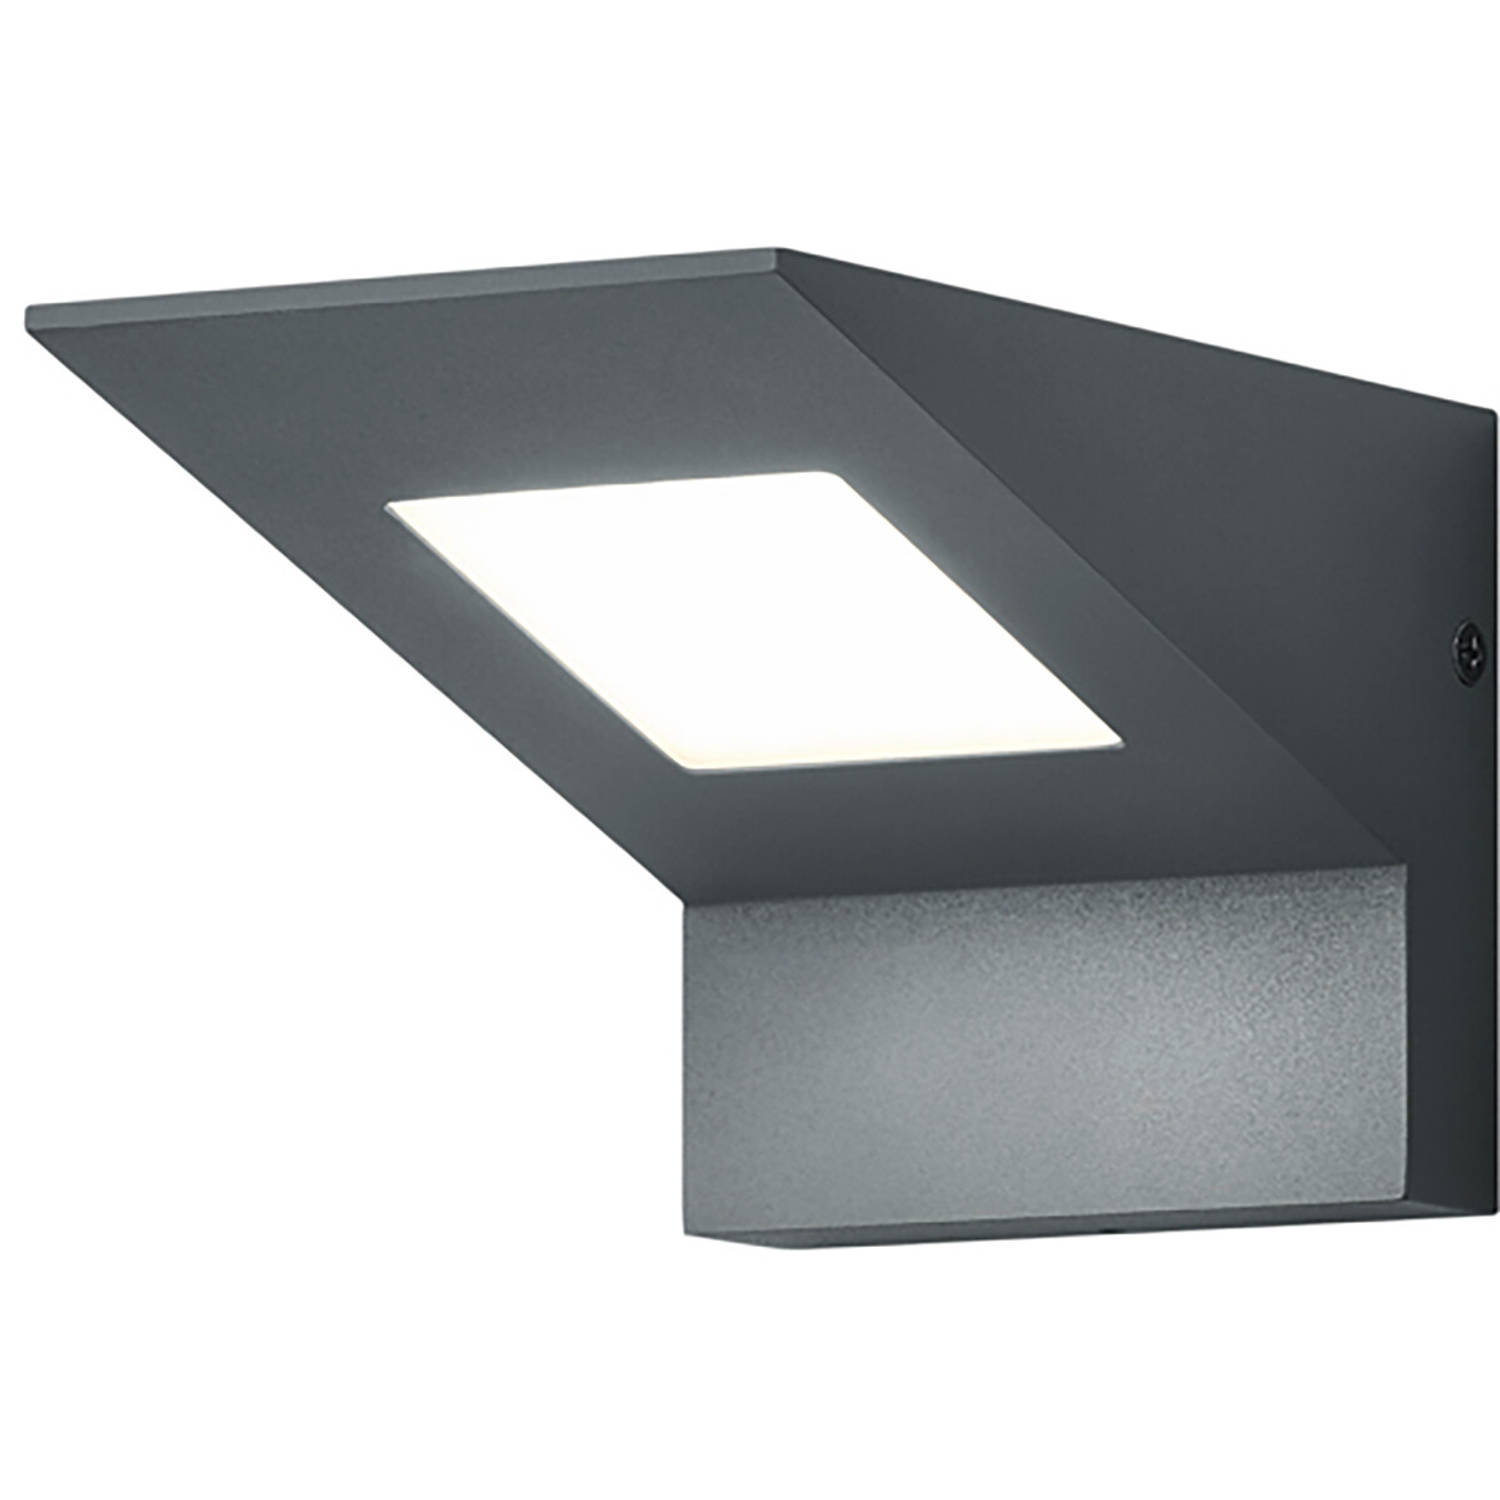 Led Tuinverlichting - Buitenlamp - Trion Nilsona - Wand - 8w - Warm Wit 3000k - Vierkant - Mat Antra